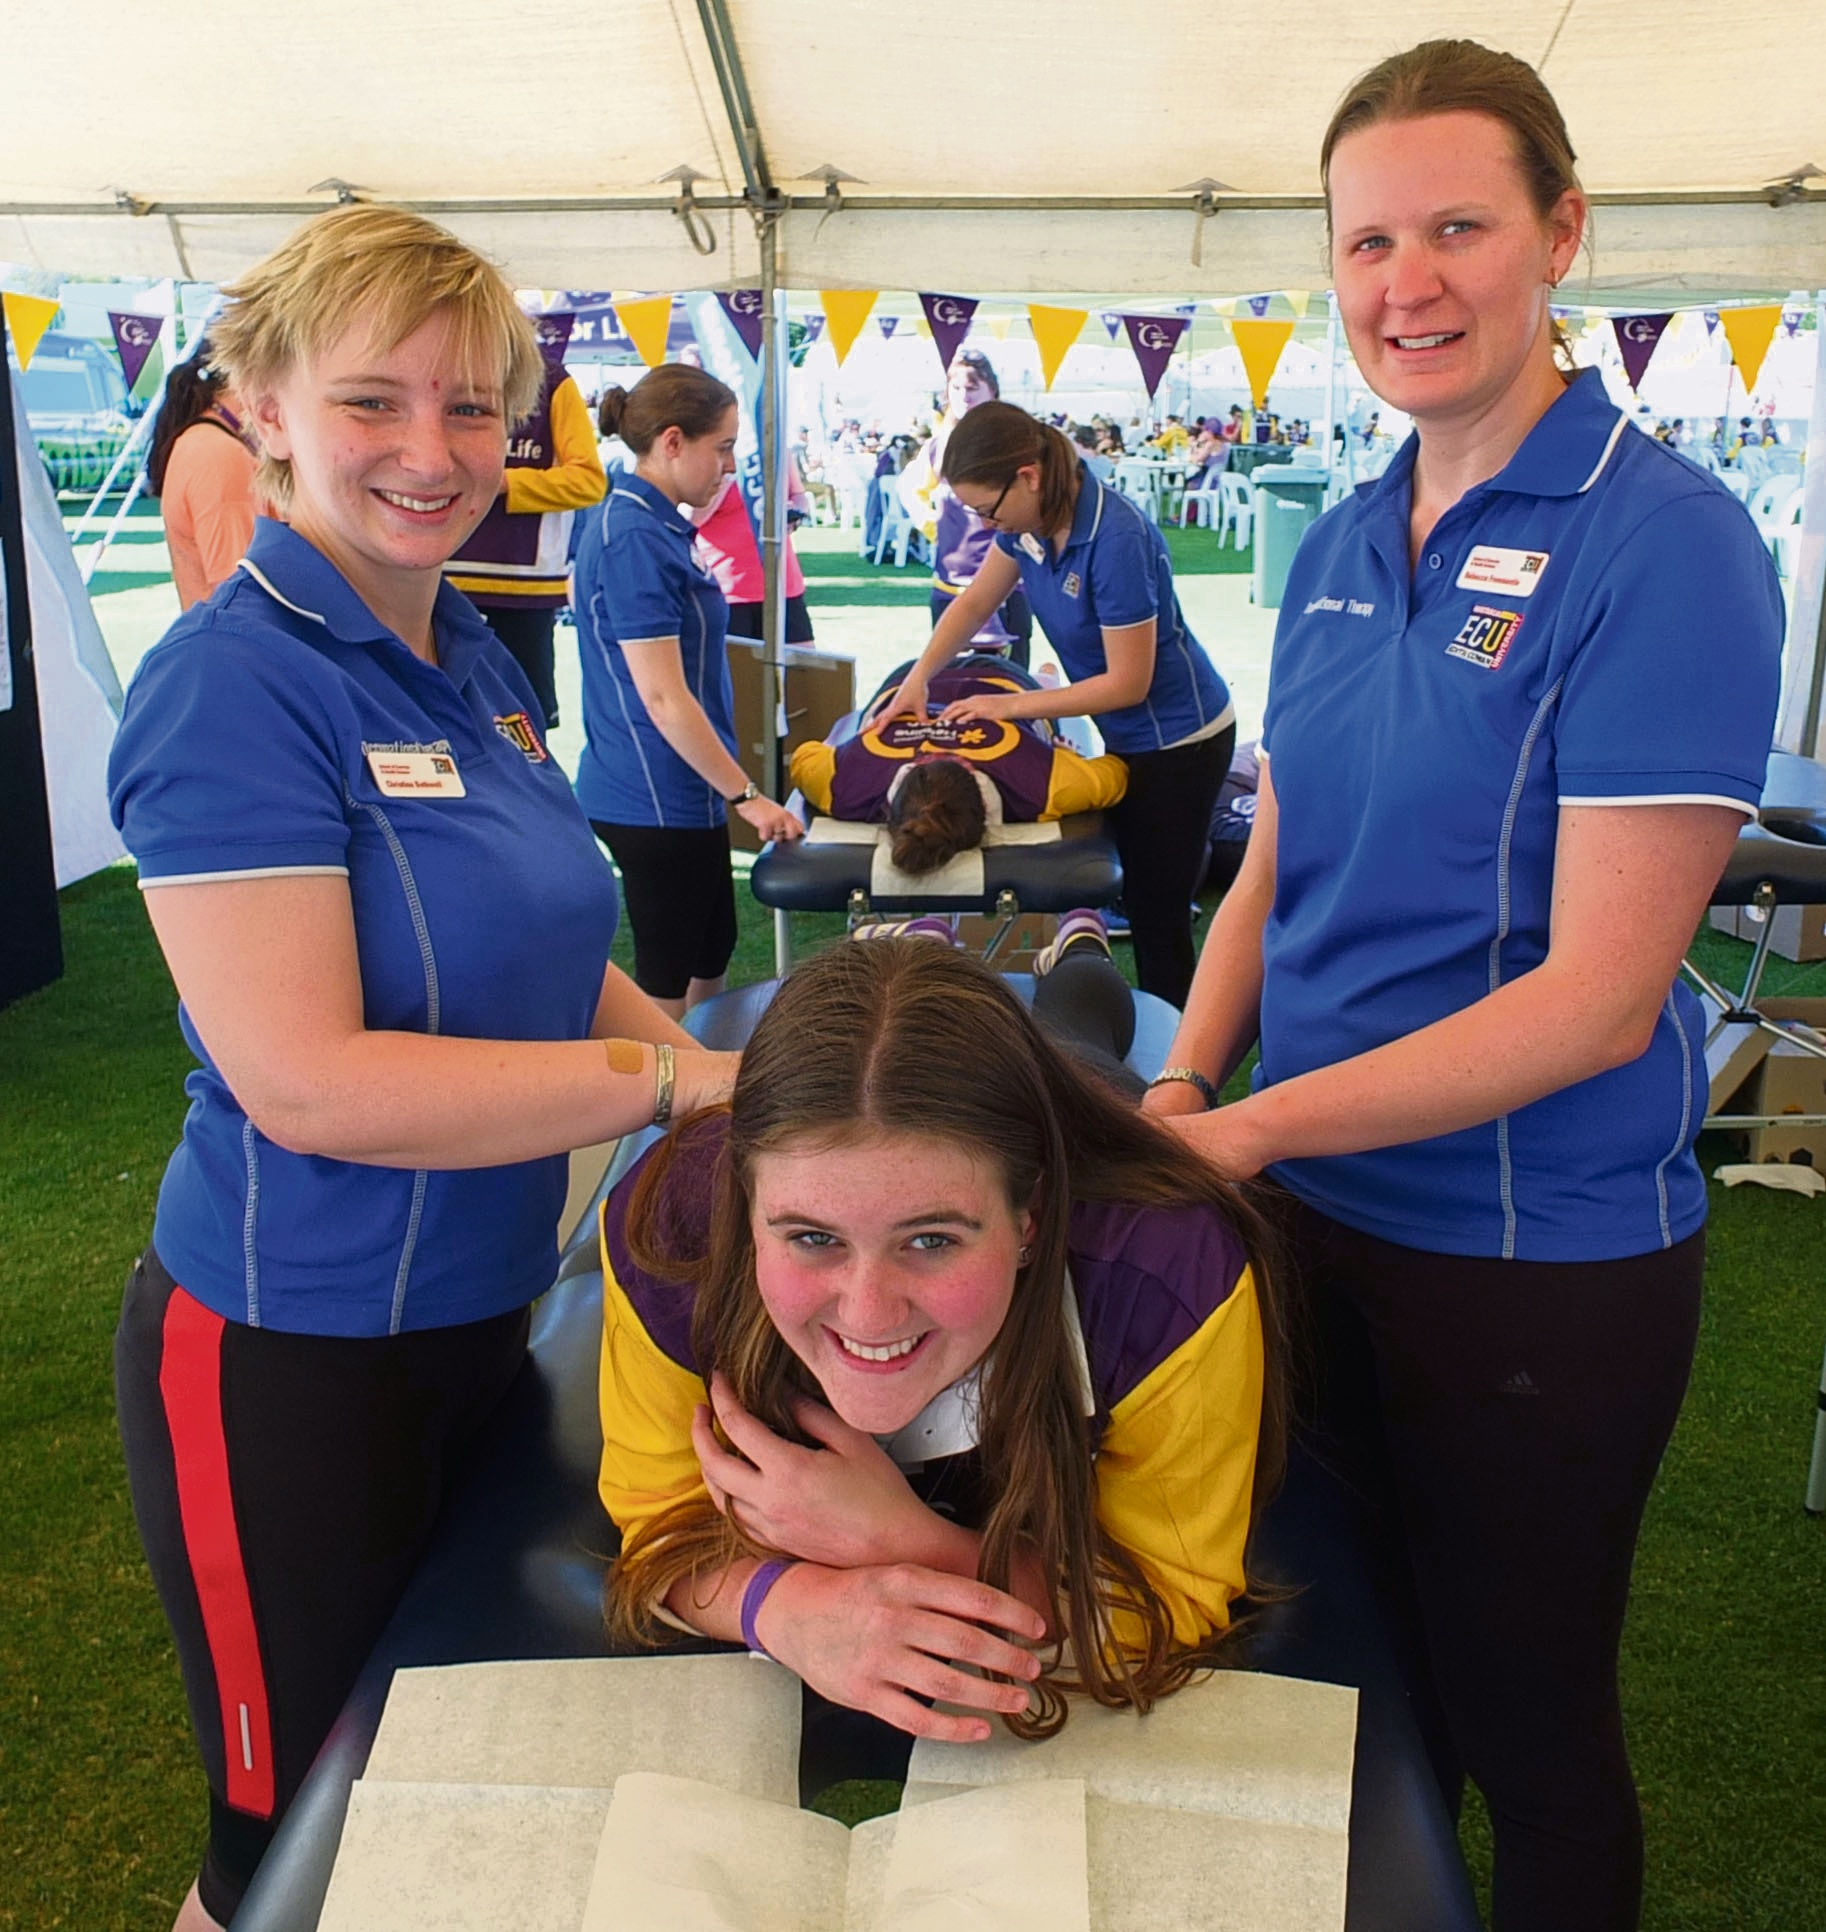 ECU Third Year Occupational therapists Christina Bothwell and Rebecca Freemantle prepare to massage Grainne Hamill.